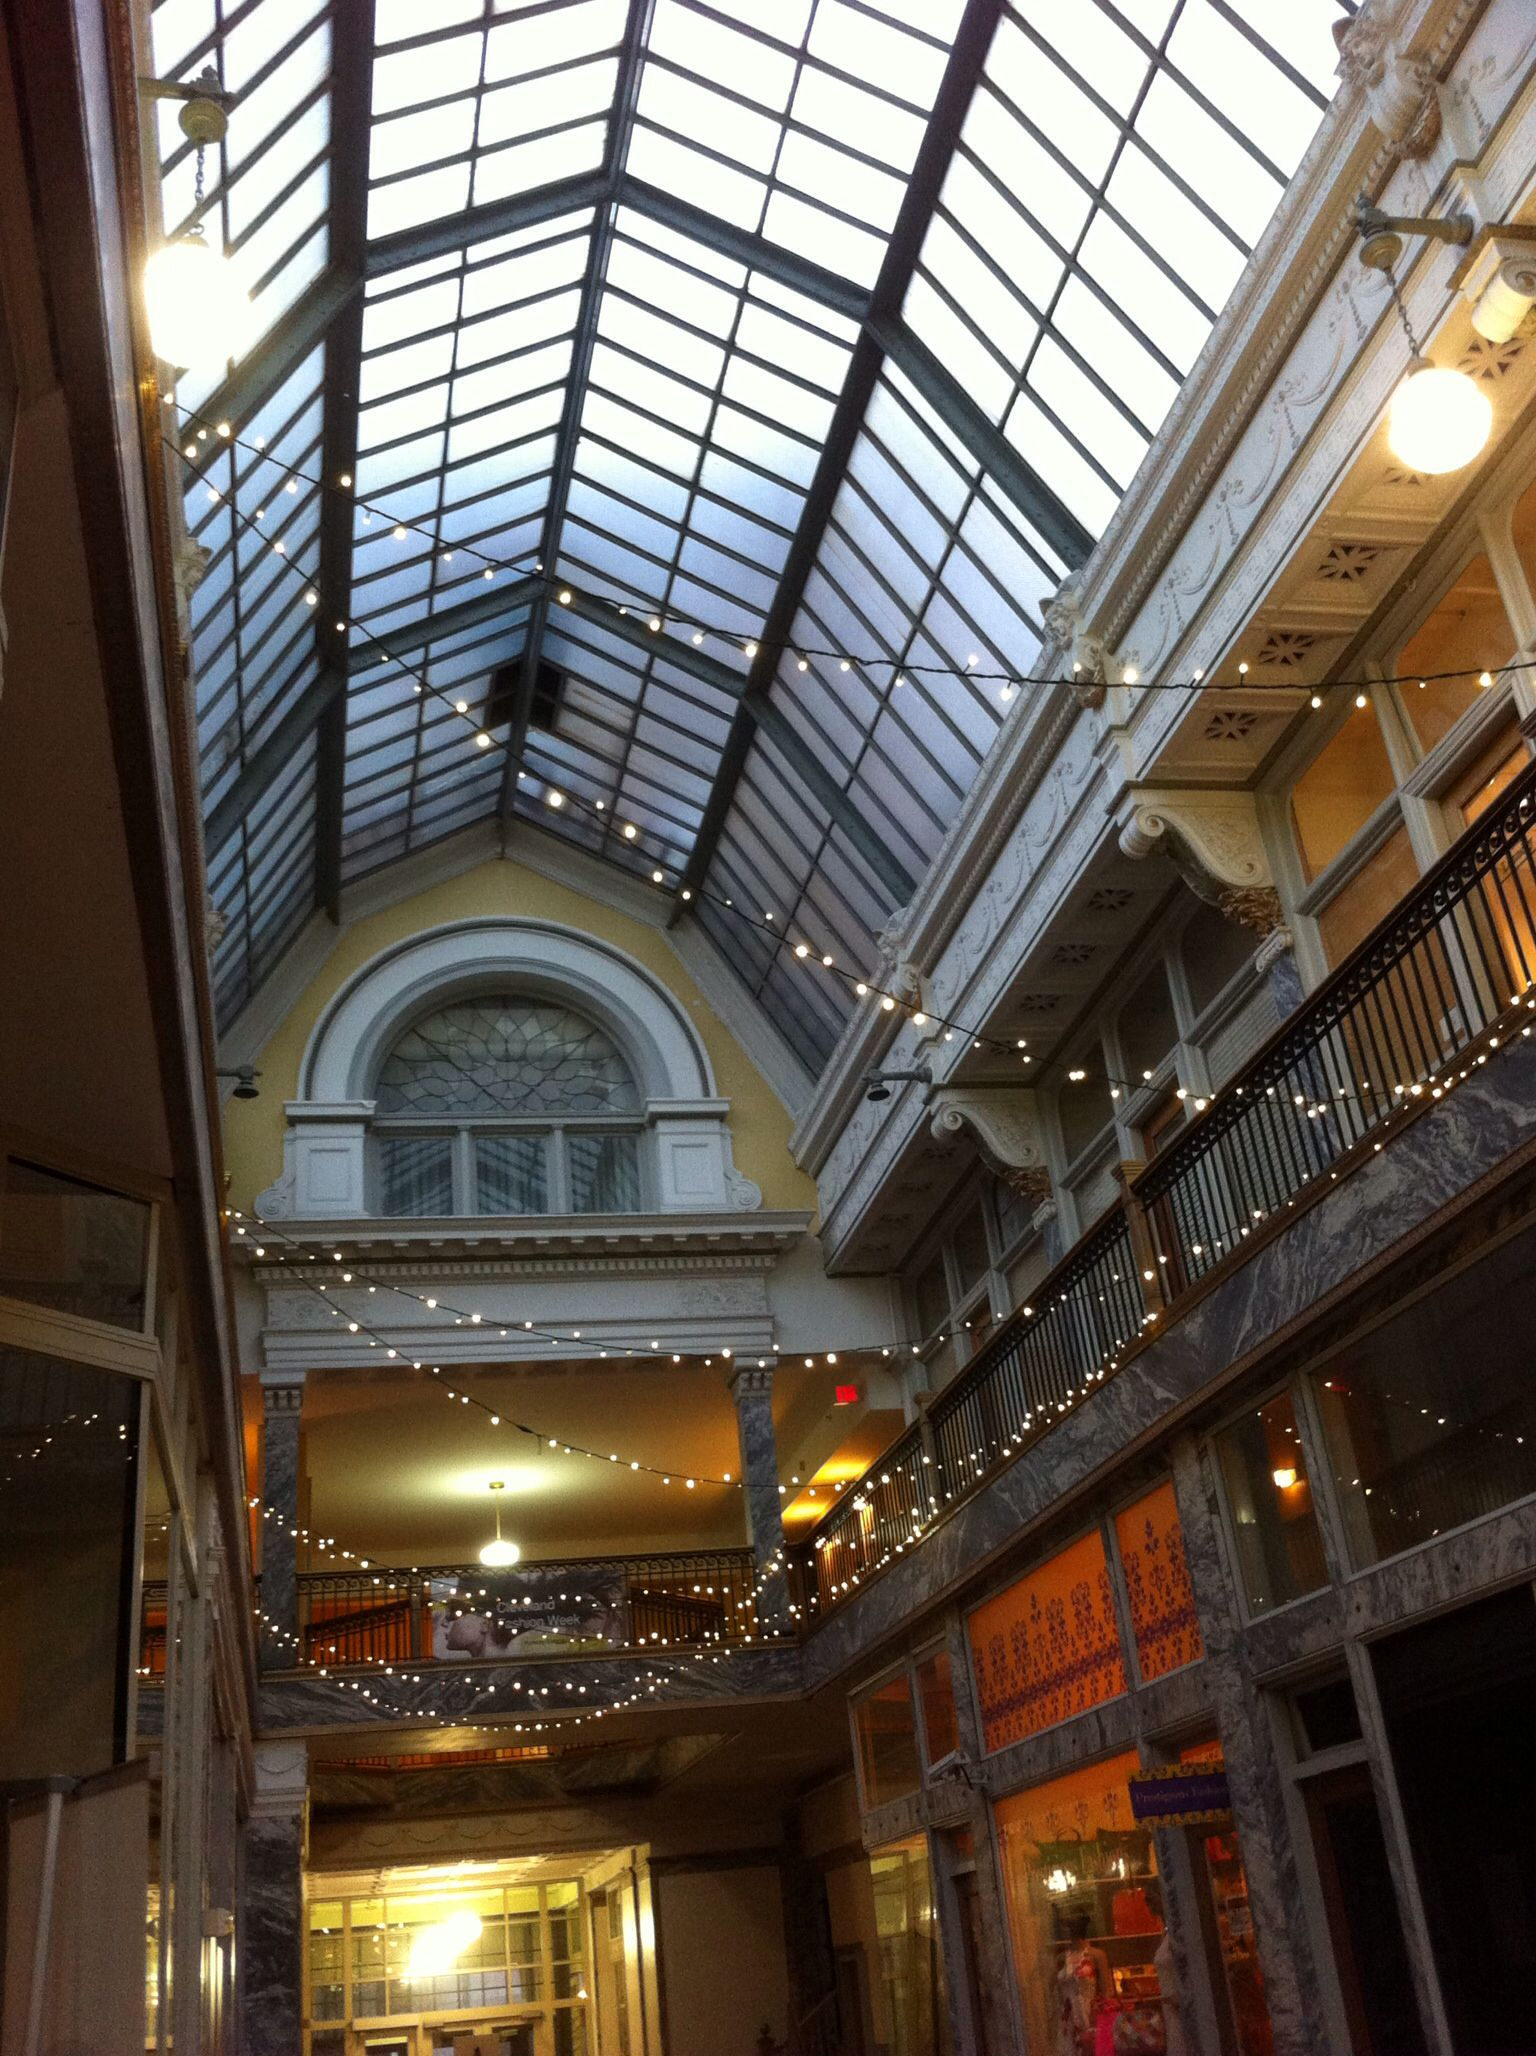 Glass roof over the 5th st arcade between euclid